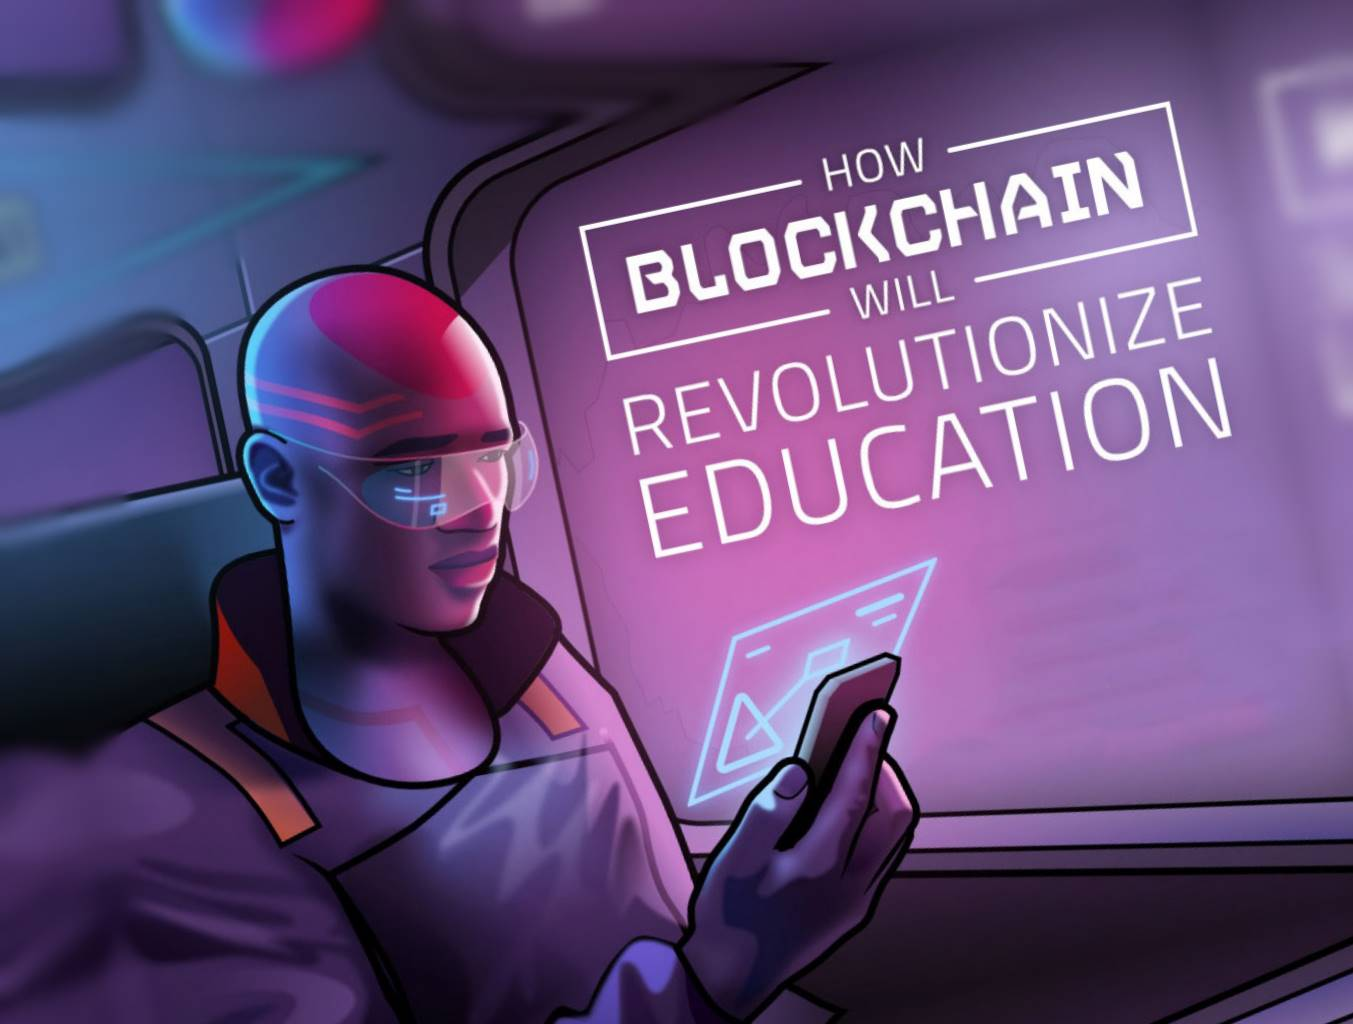 Imagine fleeing your war-torn country with only the clothes on your back and being unable to prove who you are or your level of education once you are finally settled and safe. This infographic outlines how blockchain has the potential to solve that and other issues with education